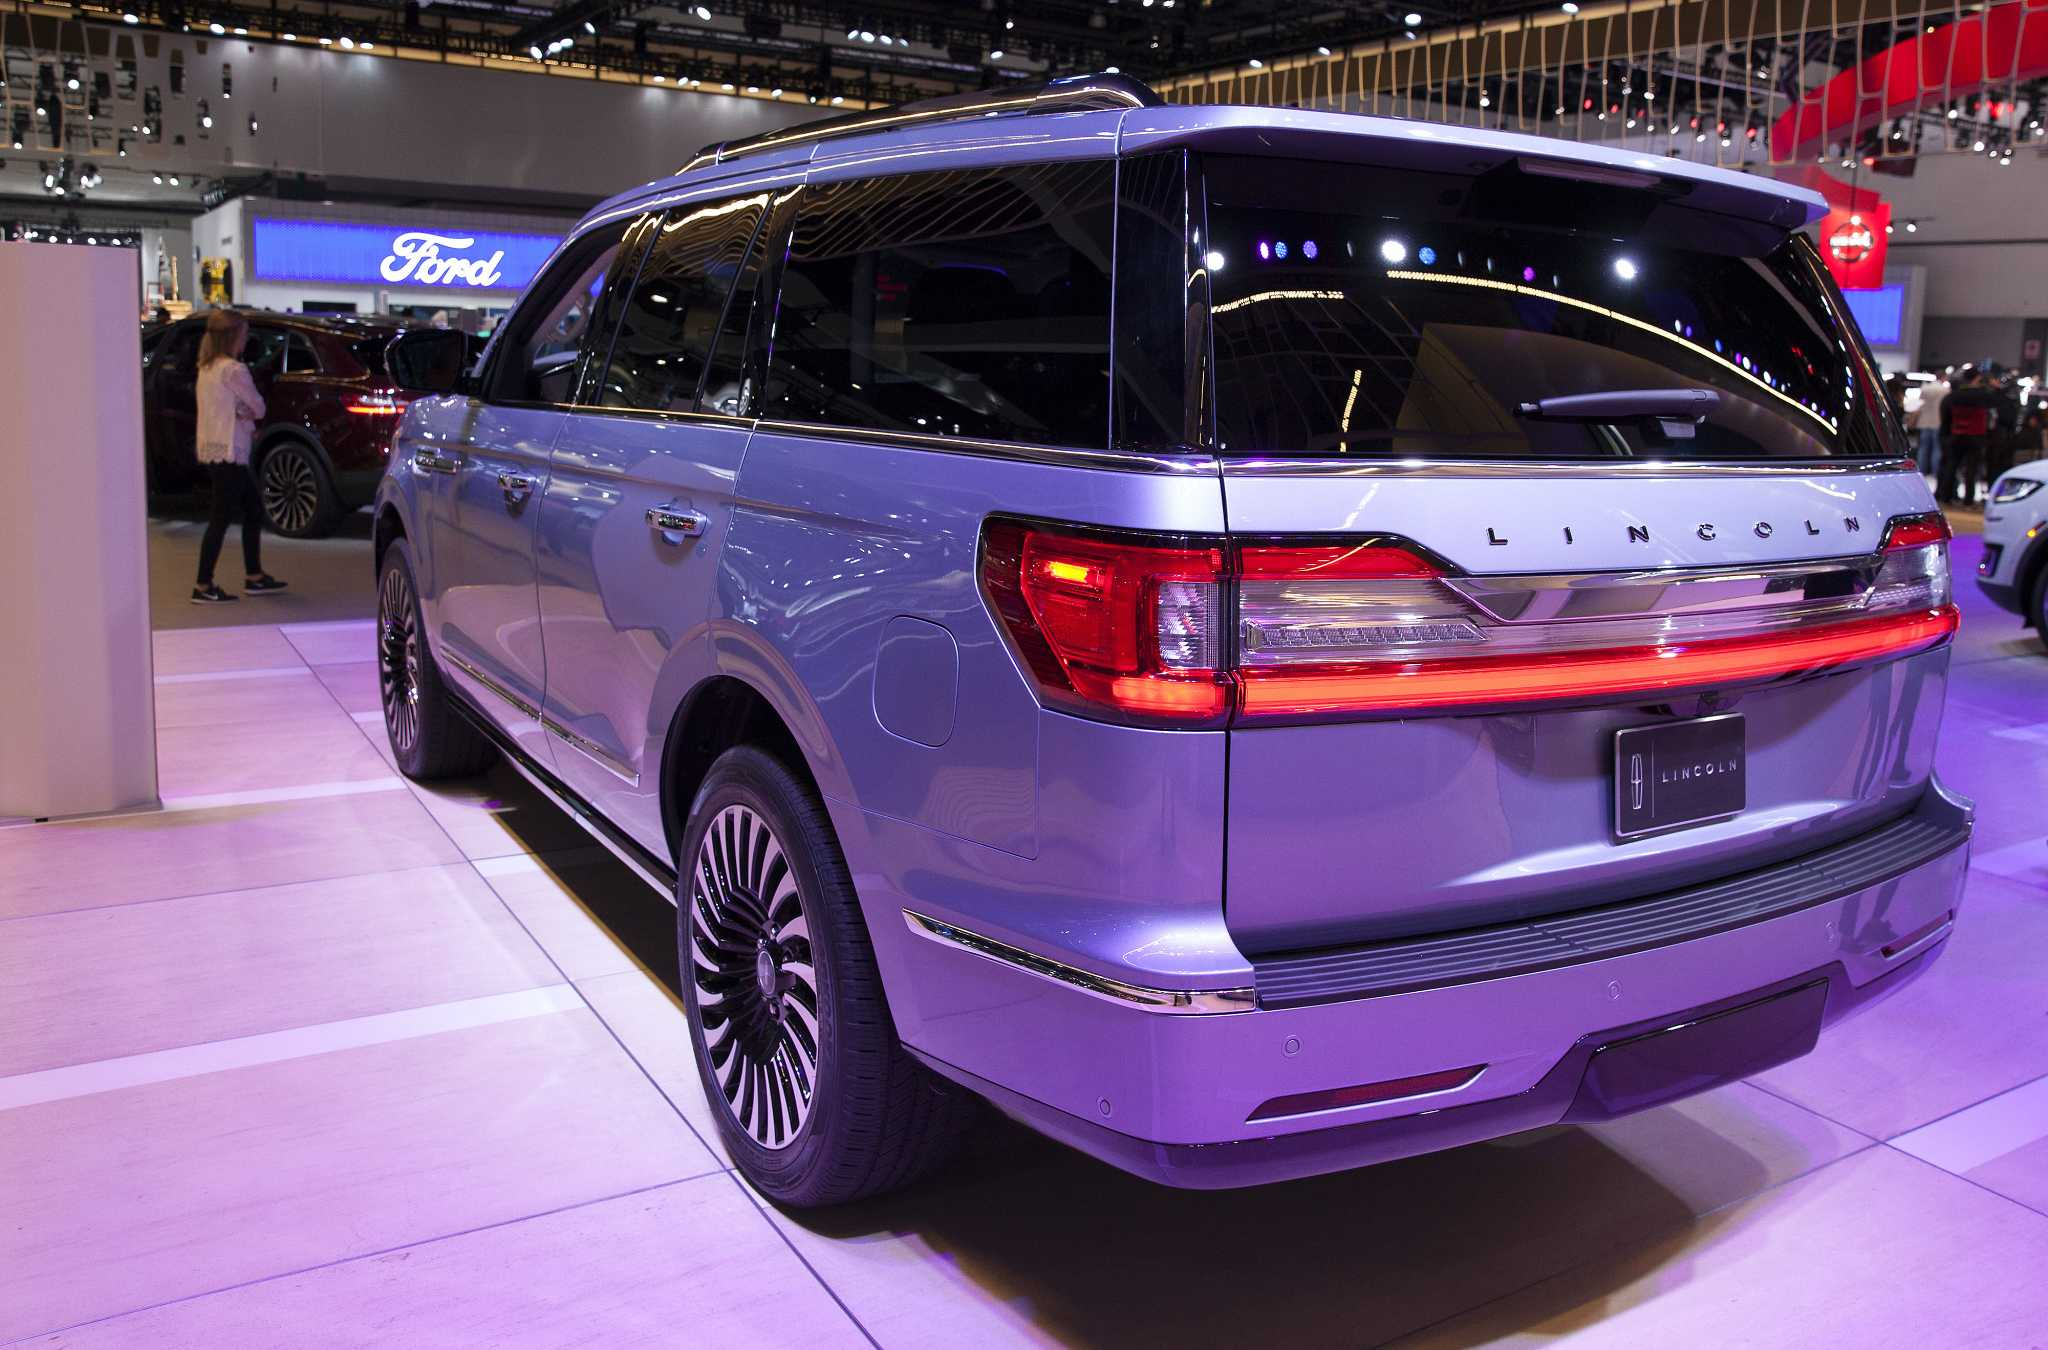 Ford s Lincoln looks to SUVs for salvation as car models stall SFGate